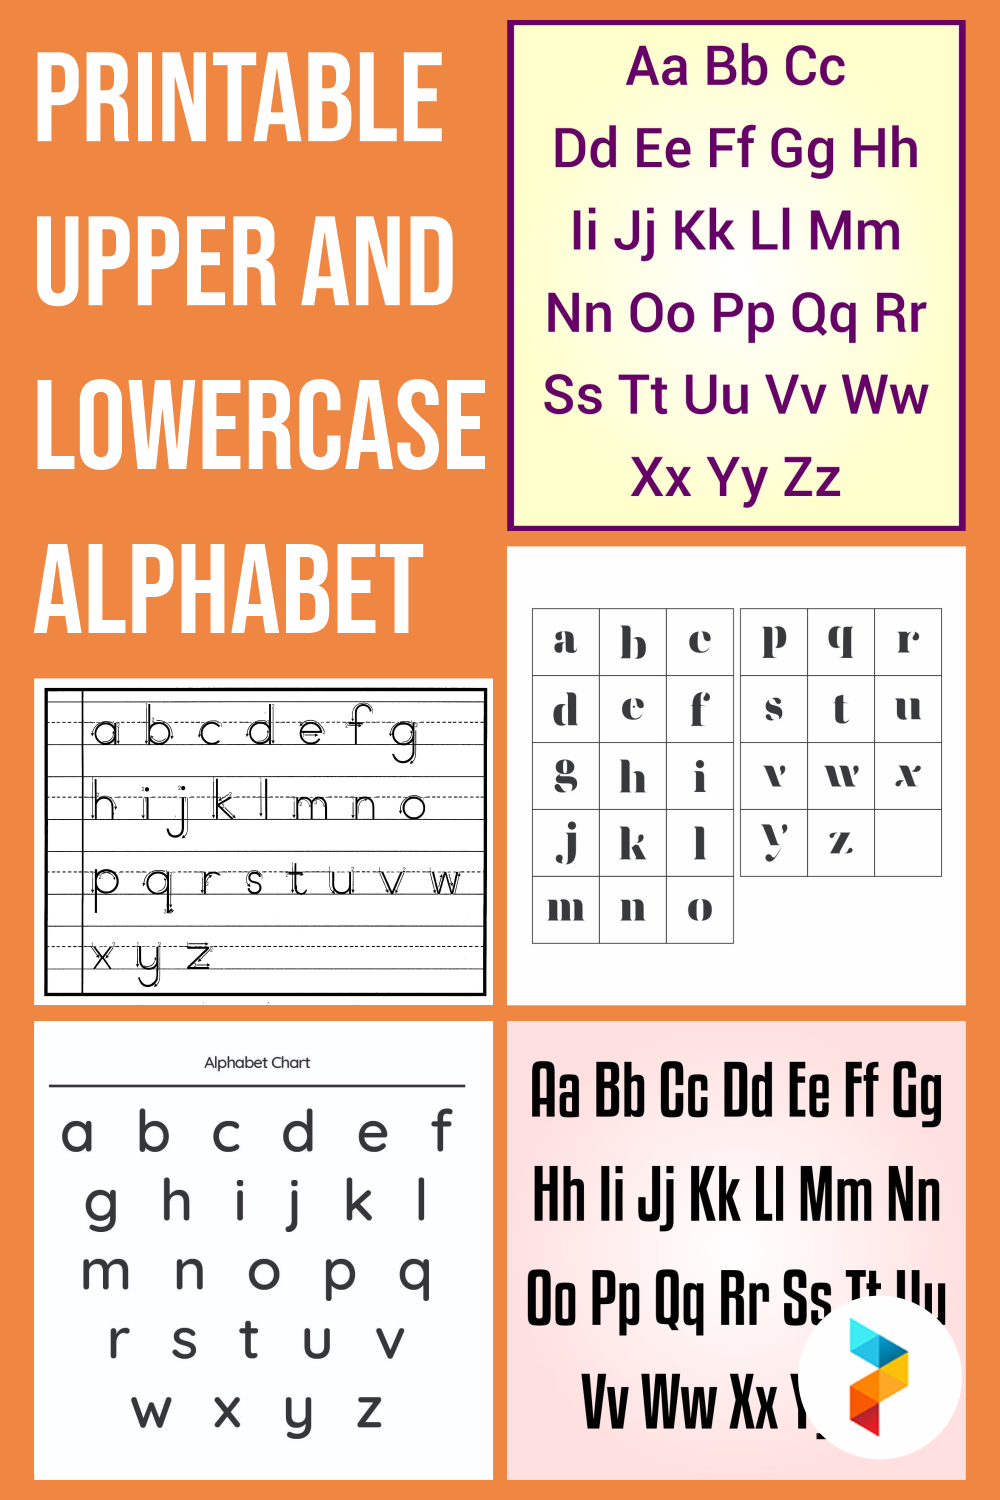 Printable Upper And Lowercase Alphabet